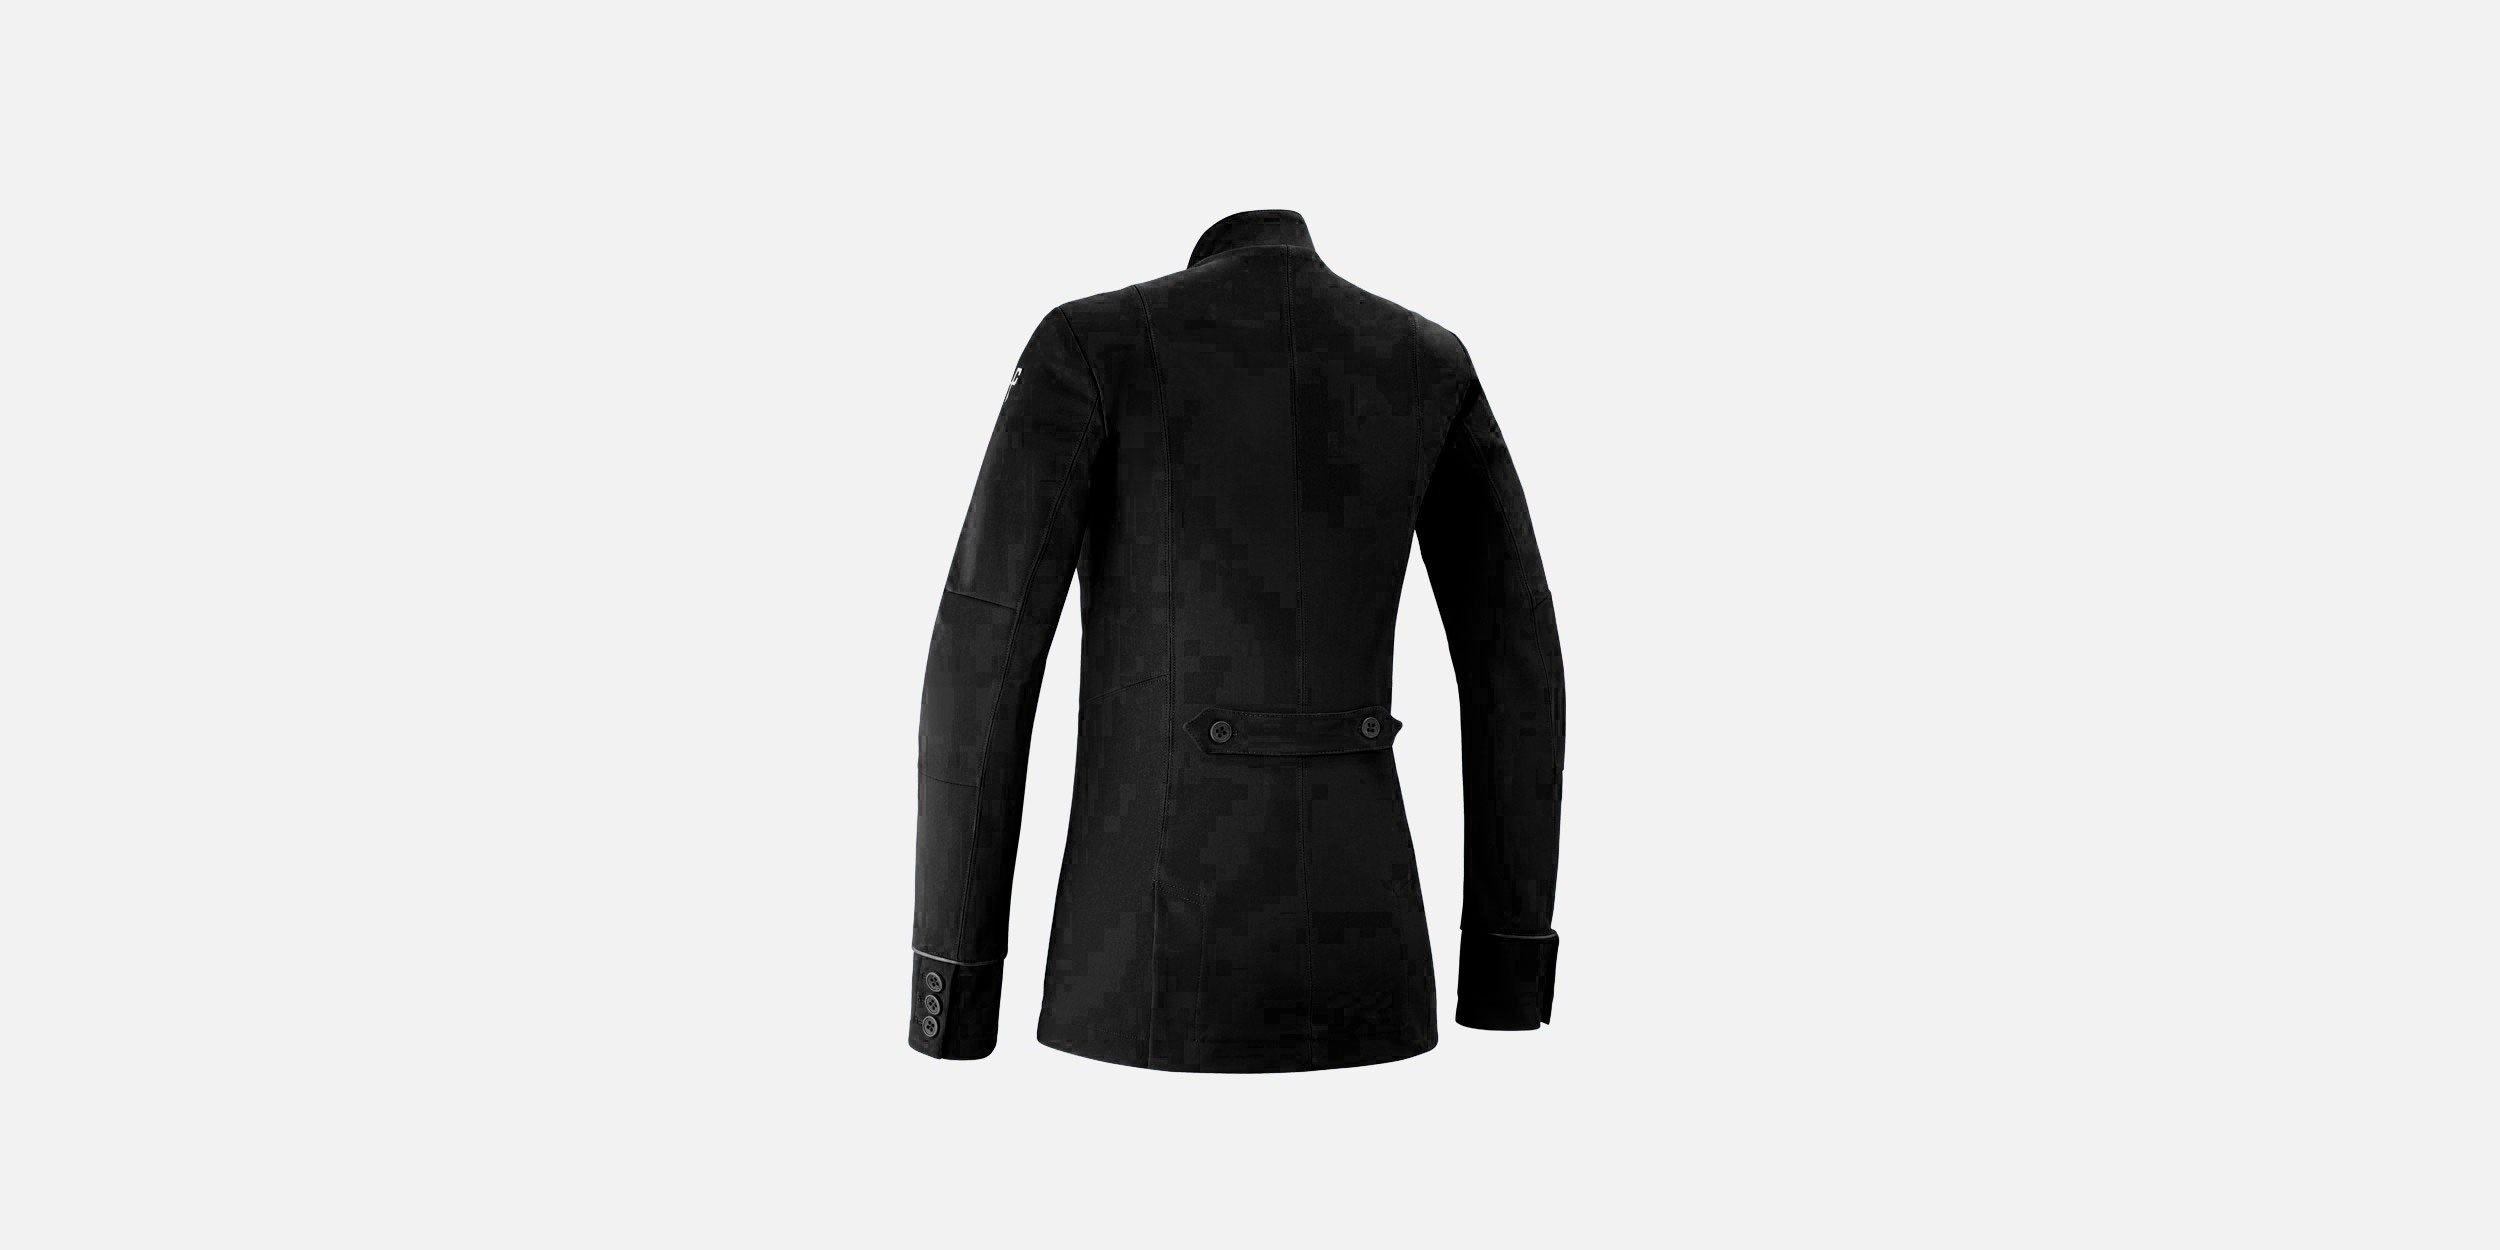 TAILOR MADE 2.0 veste personnalisable